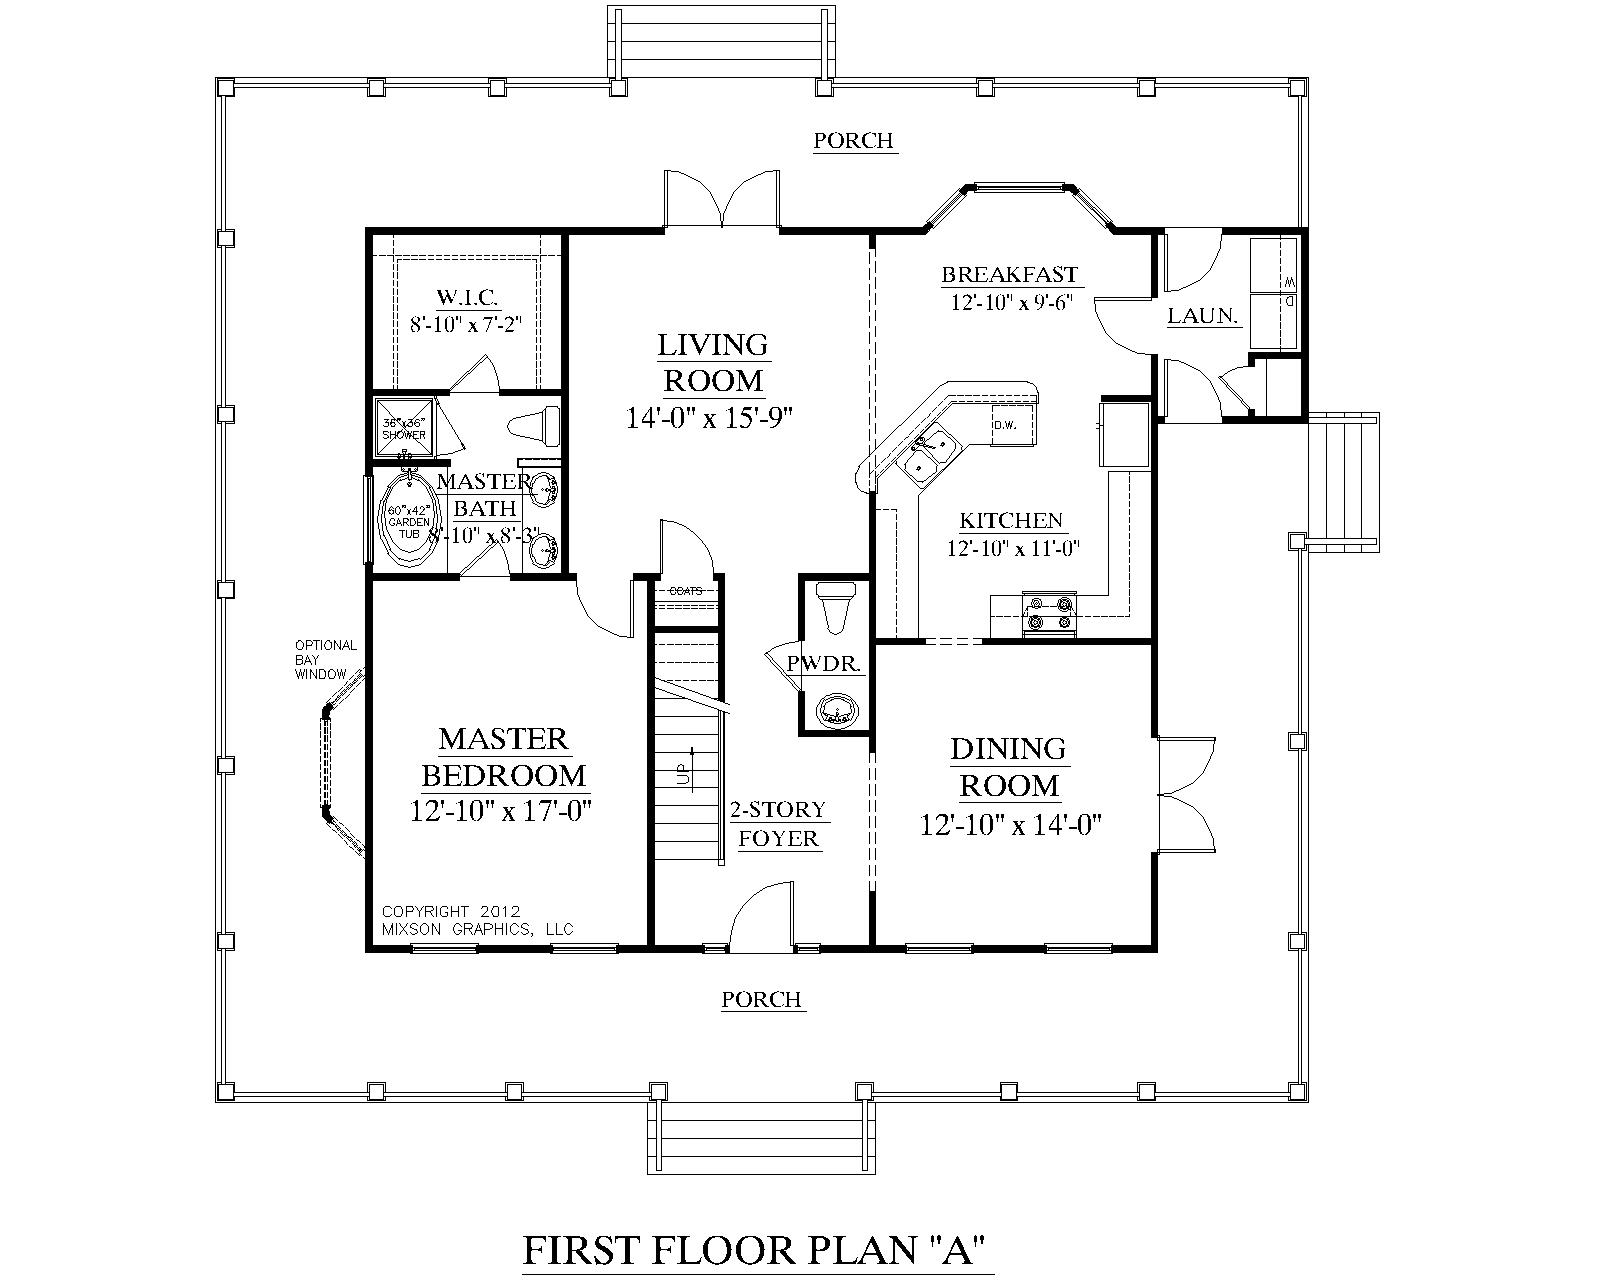 3 Bedroom Two Story House Plans Two-Story Bedroom for Girls